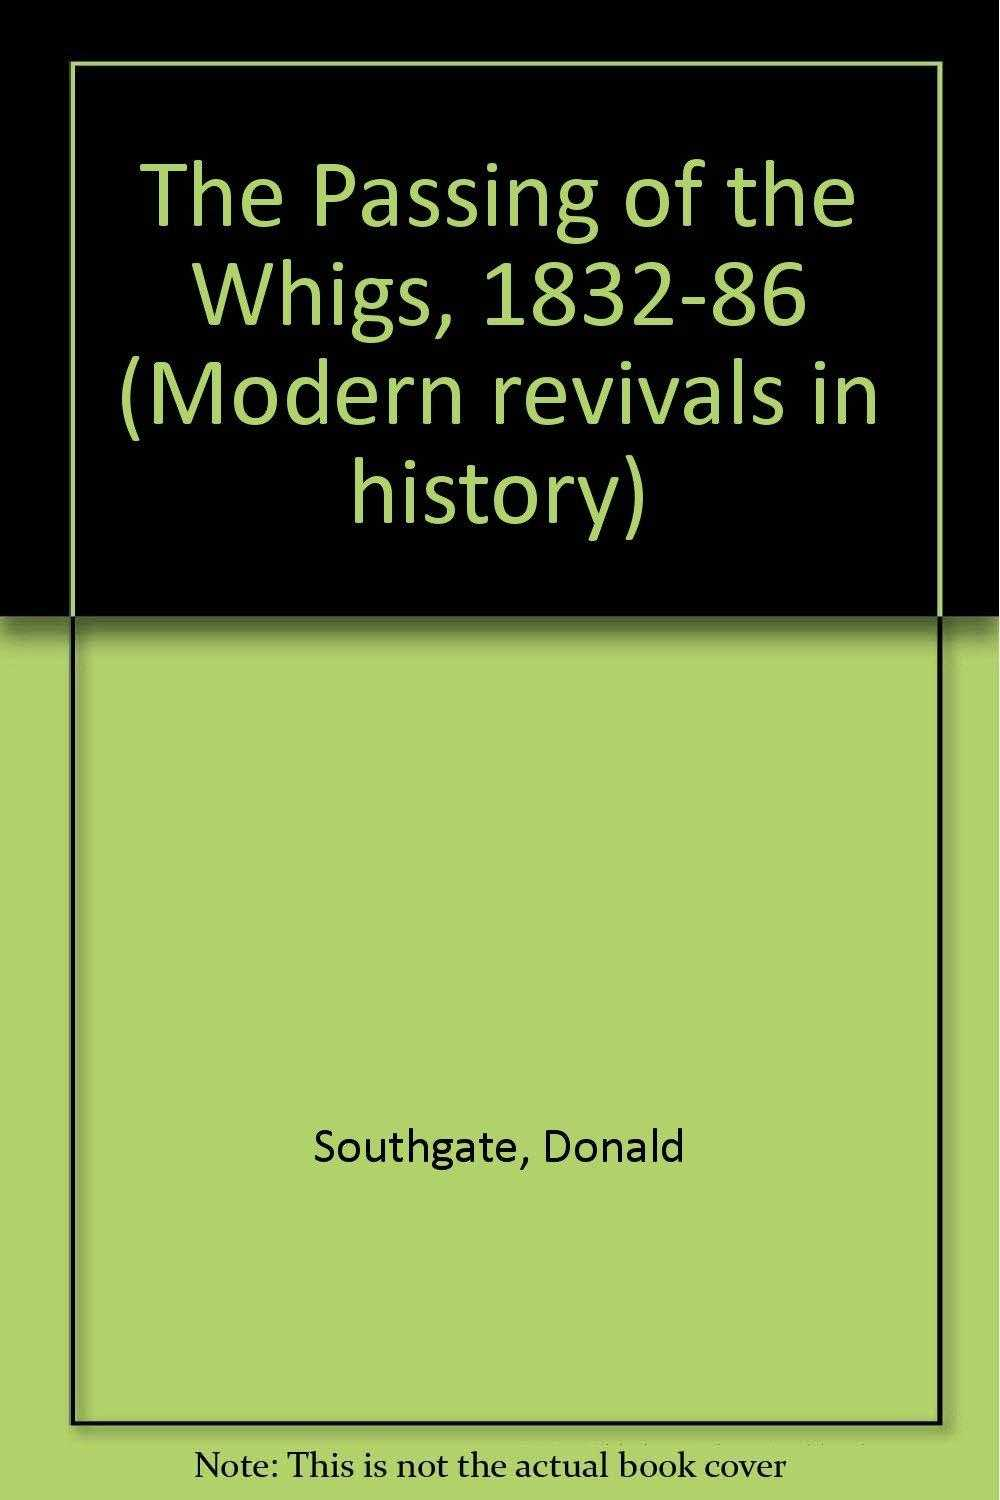 SOUTHGATE, DONALD - The Passing of the Whigs, 1832-86 (Modern revivals in history) by.